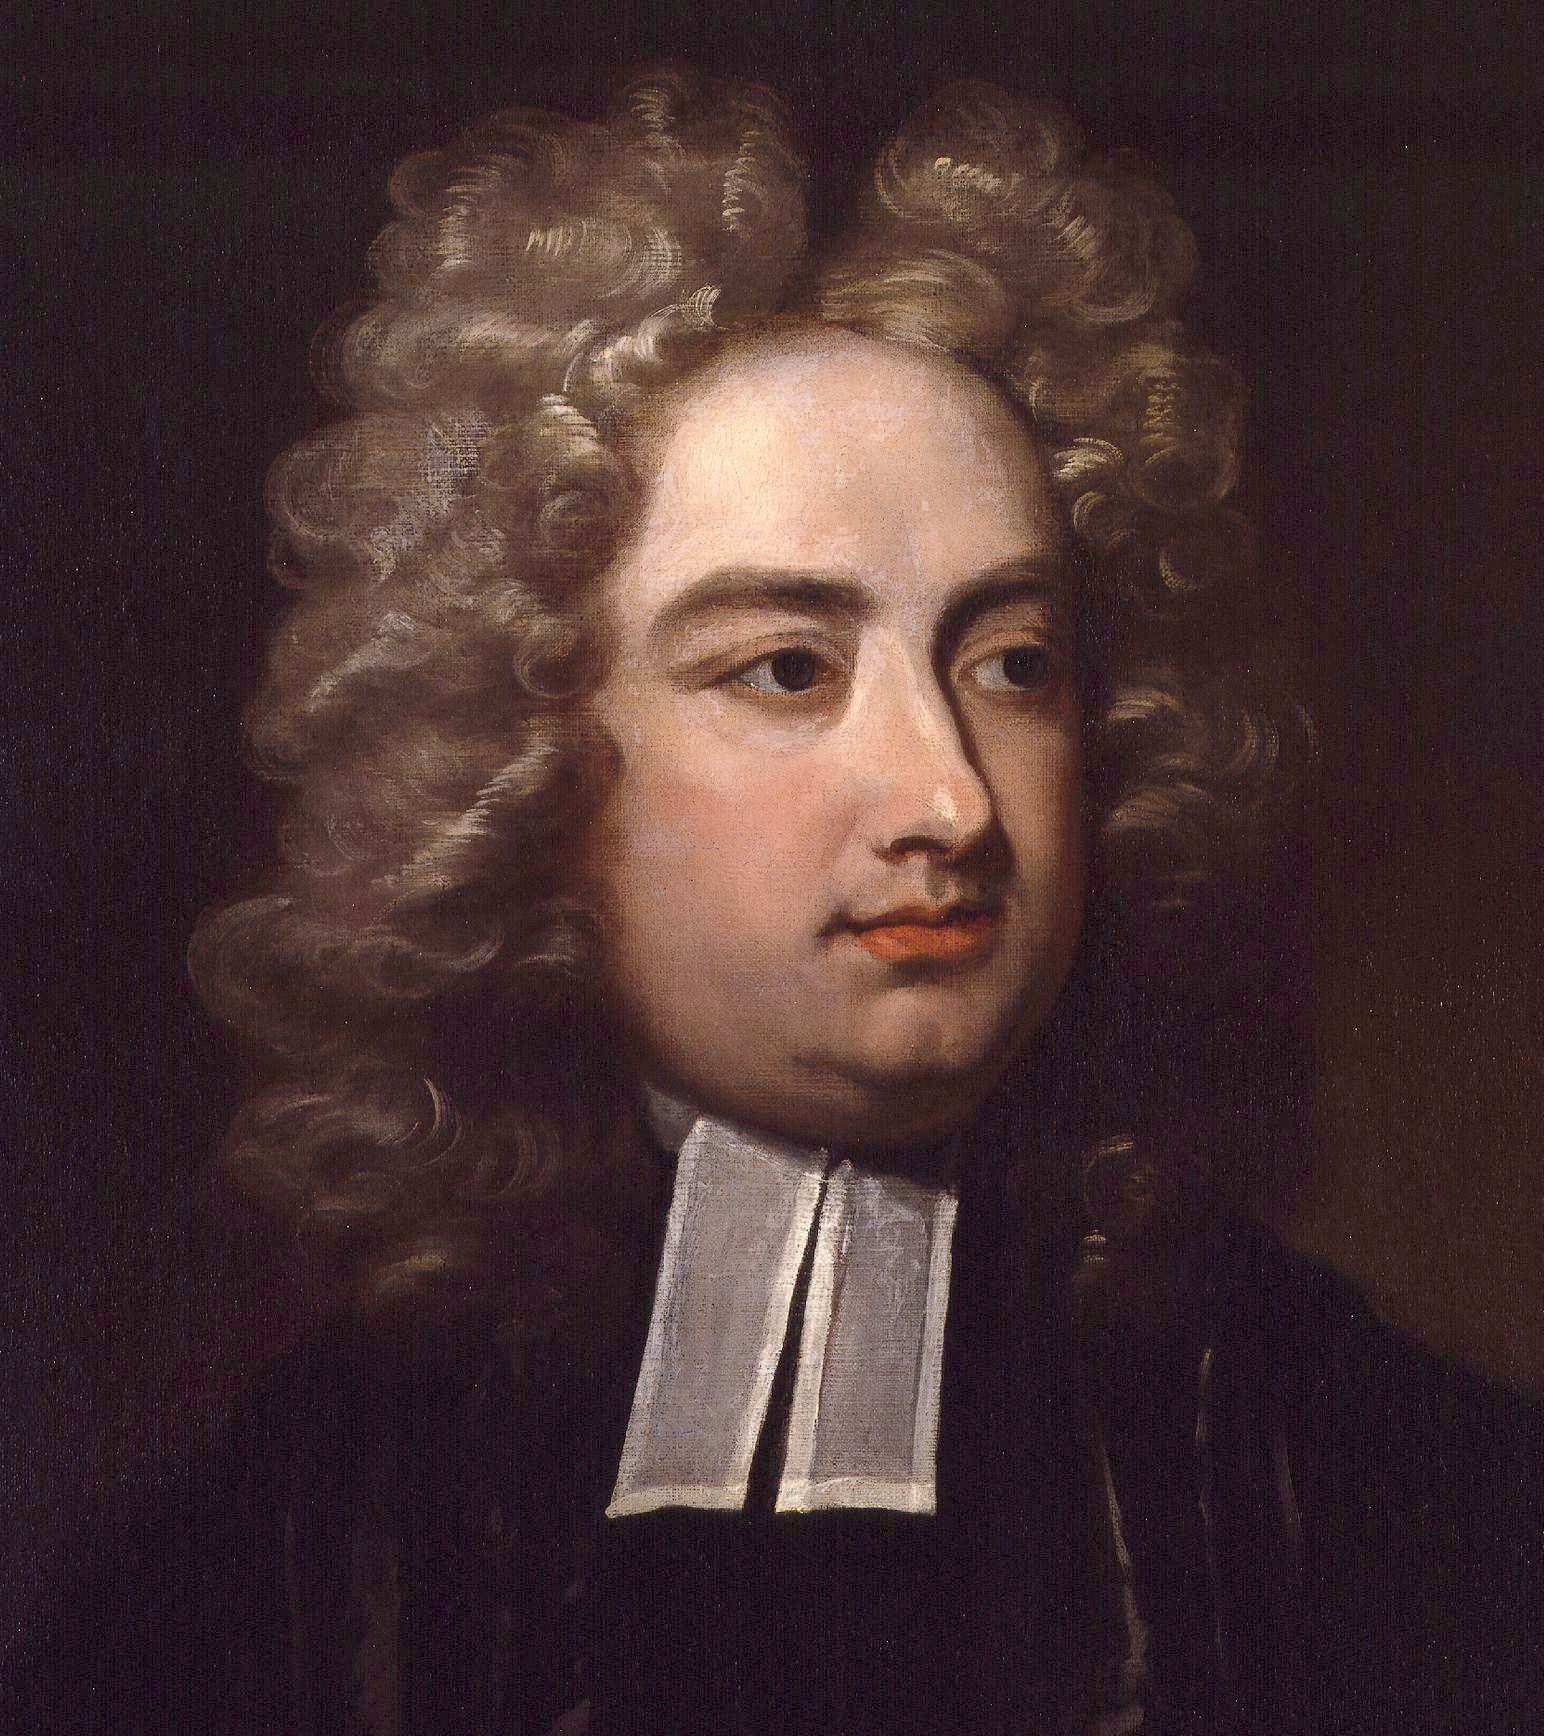 Gulliver S Travels Quotes And Page Numbers: Jonathan Swift (1667-1745) Was An Anglo-Irish Satirist